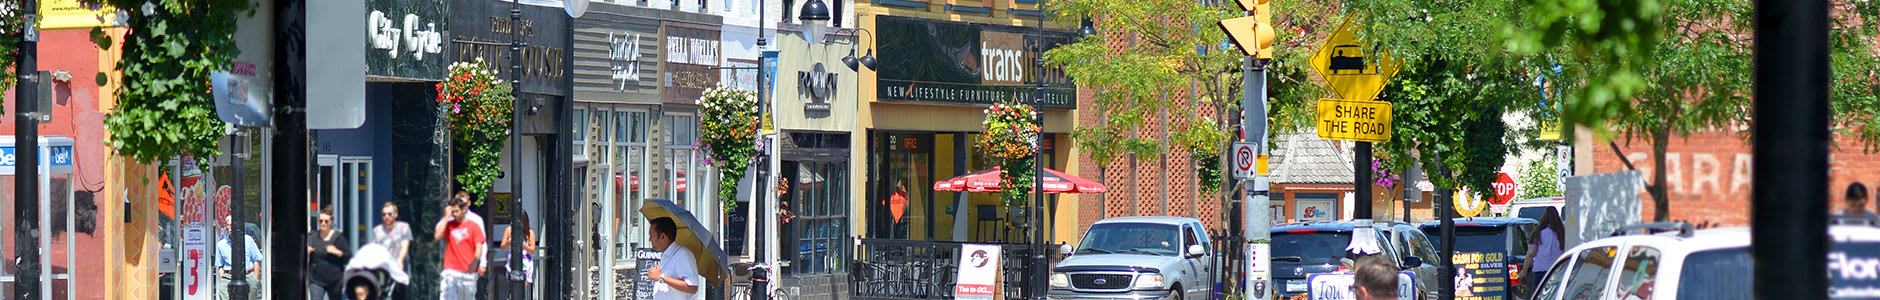 St. Catharines Business Advantages